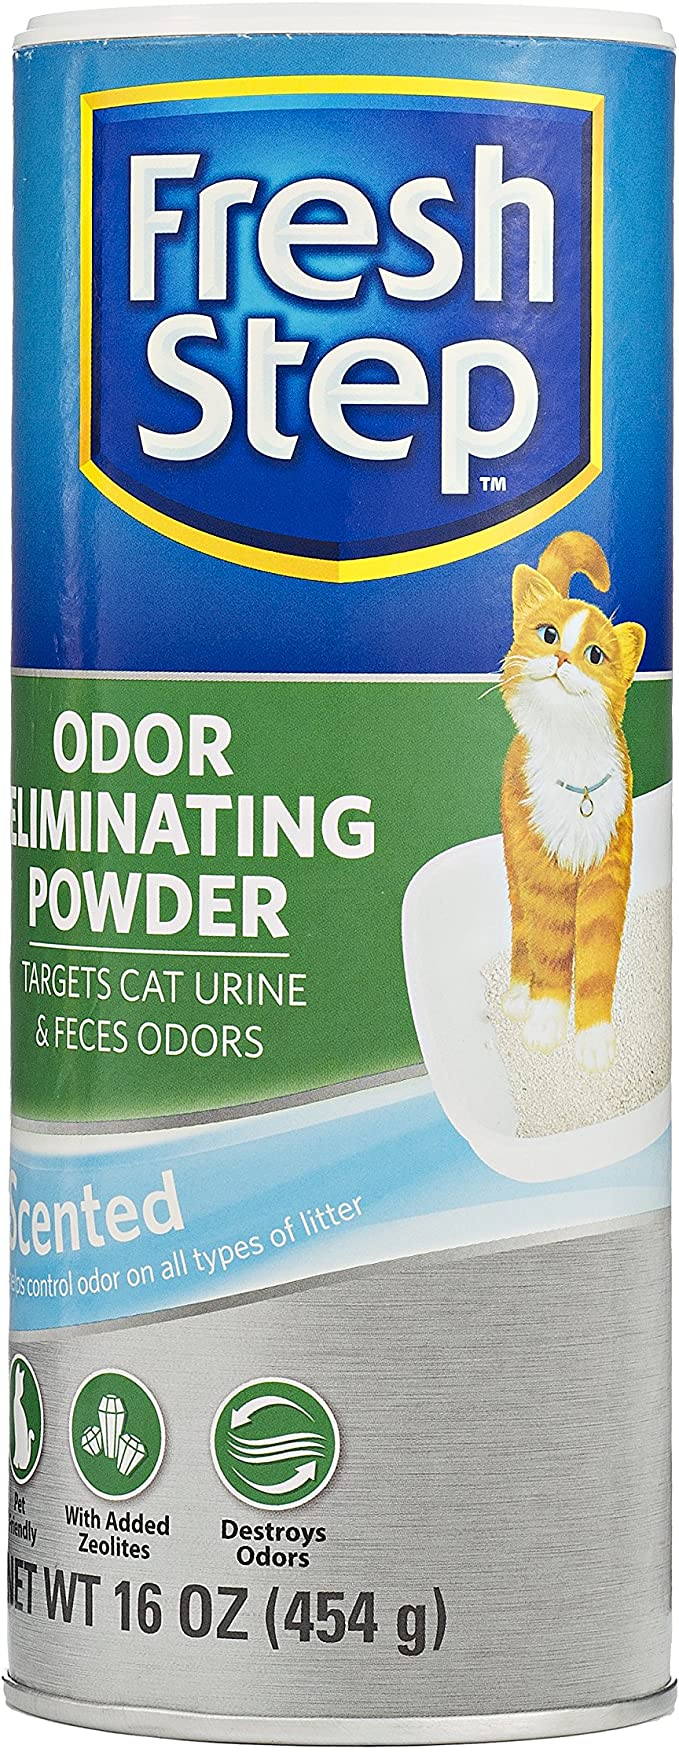 Fresh Step Cat Litter Box Odor Eliminating Spray and Powder- Cat Deodorizer Spray, Odor Eliminating Powder - Odor Neutralizing Cat Products for All Cat Litter - Easy to Use